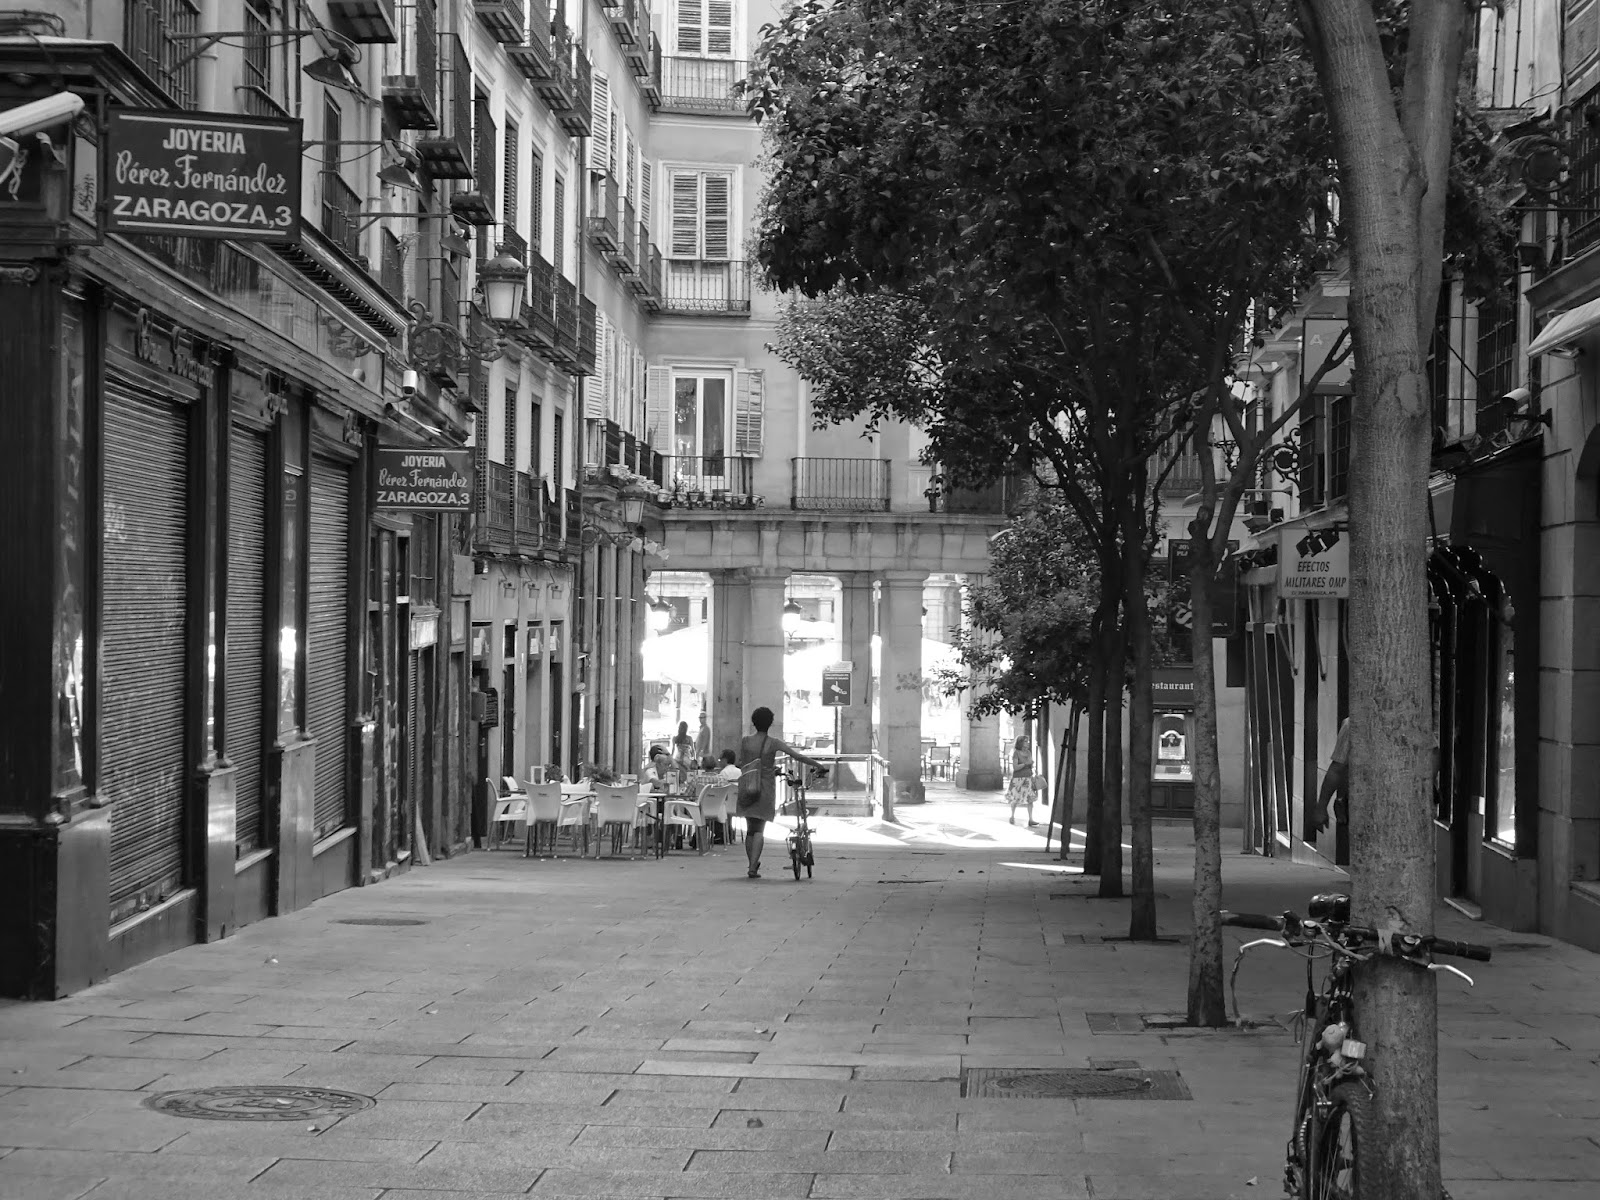 calle, madrid, plaza mayor madrid, plaza mayor,